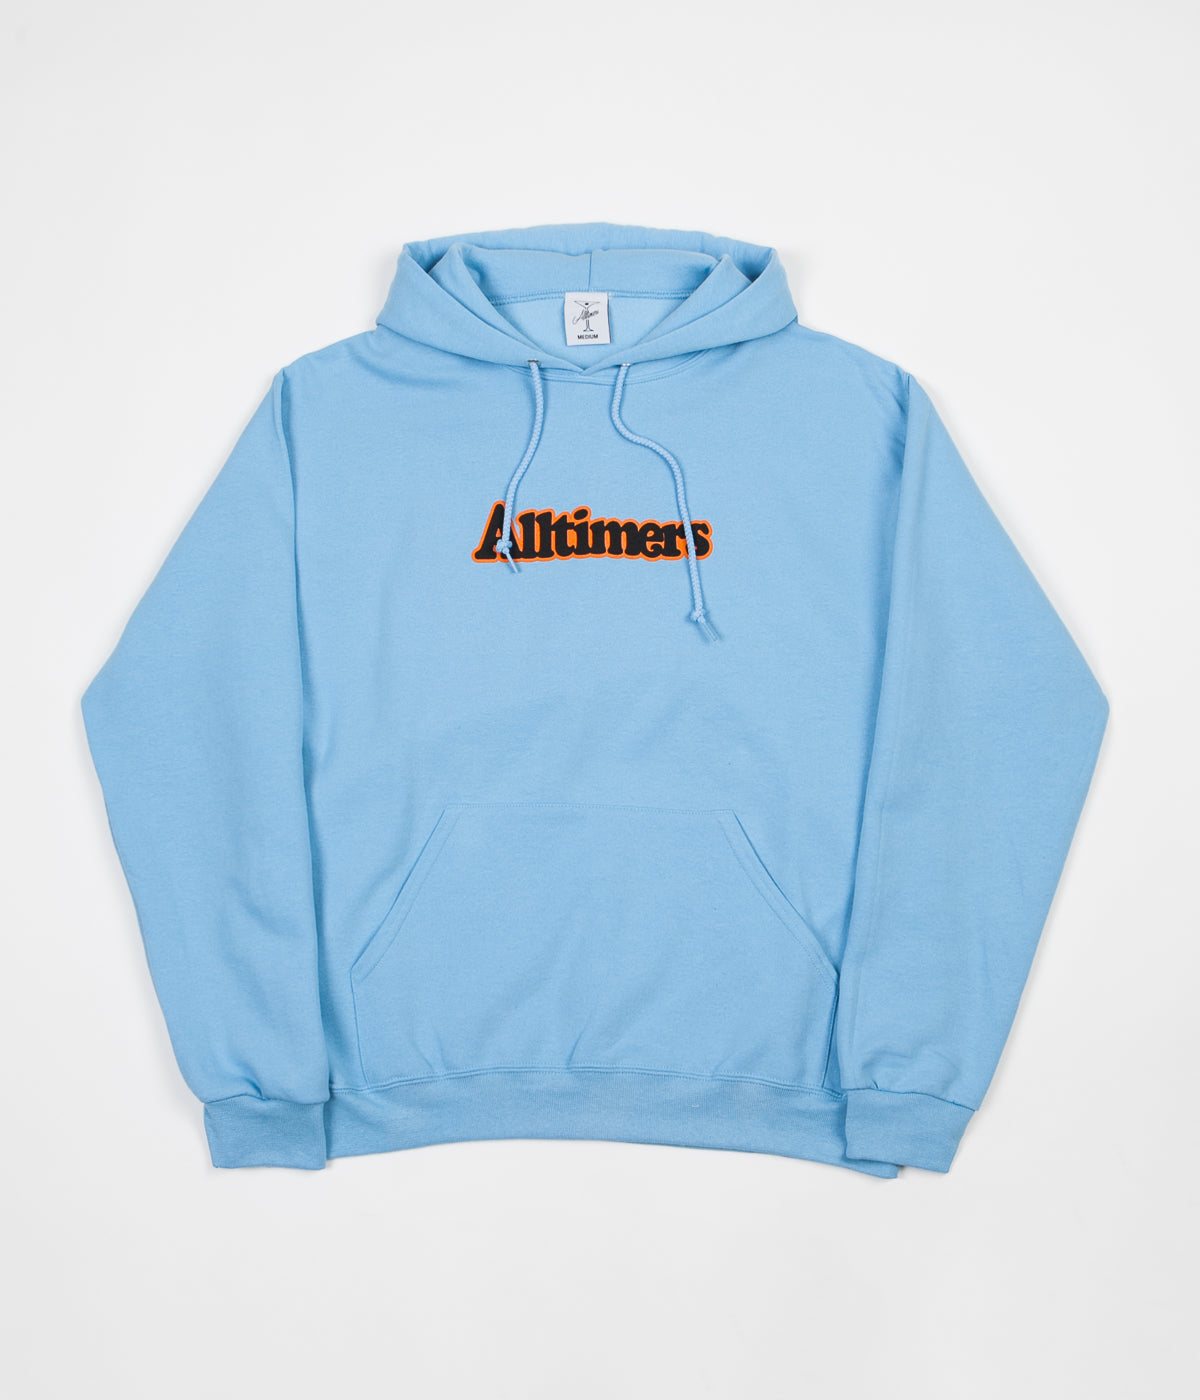 Alltimers Broadway Hoodie - Light Blue